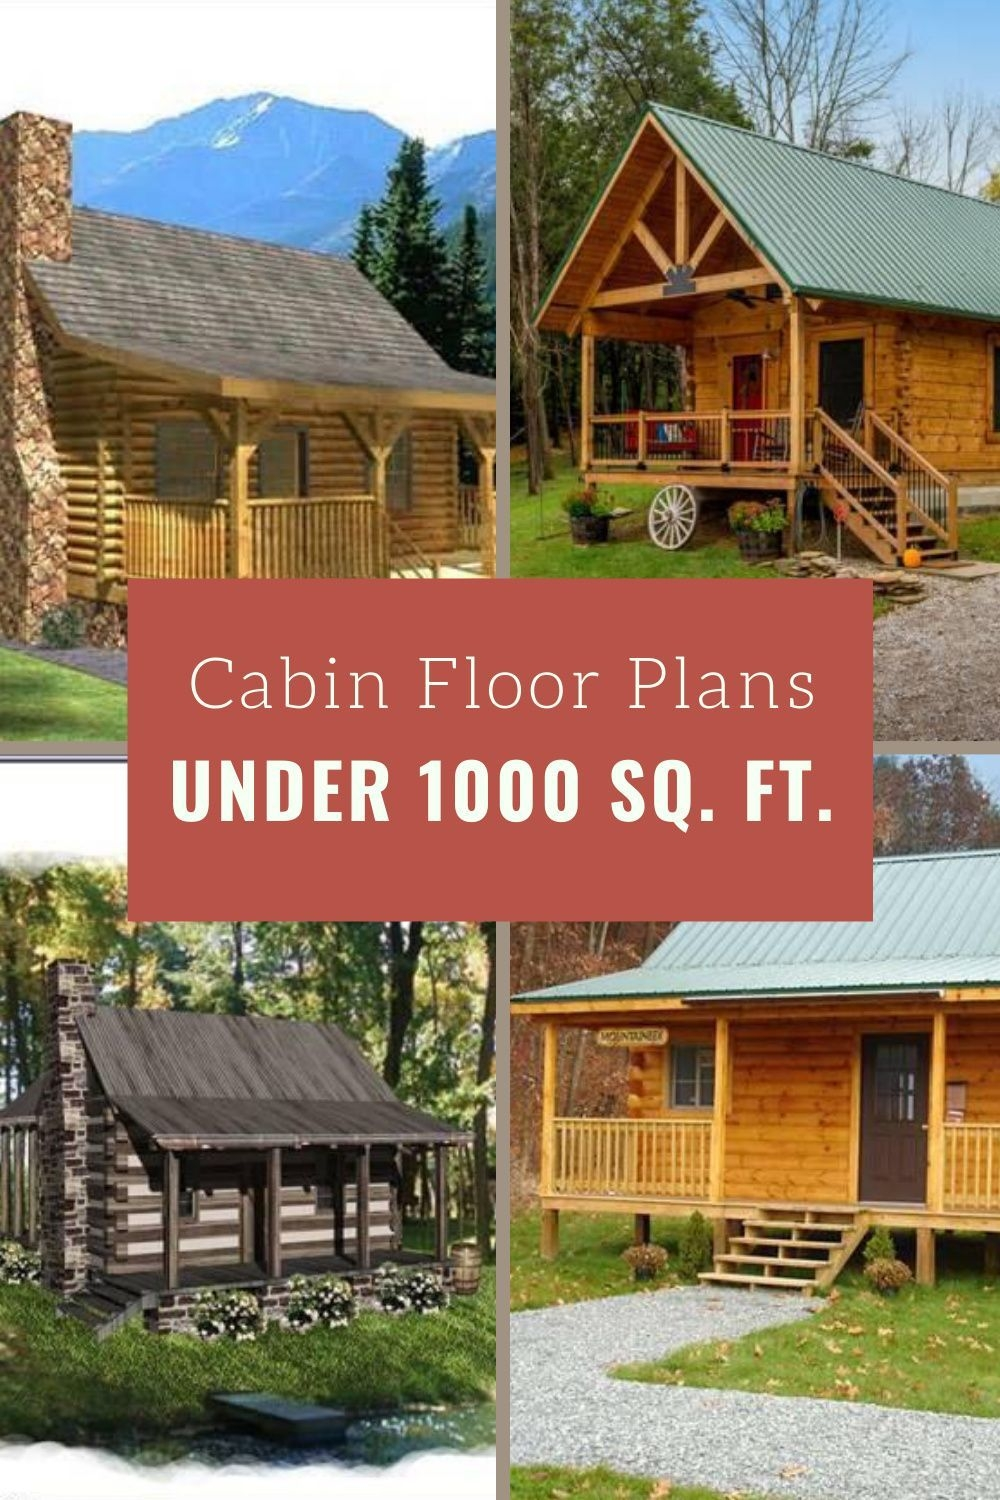 Extraordinary Small Cabin Plans On Stupendous Cabin Floor Plans Under 1 000 Square Feet On Small Cabin Plans